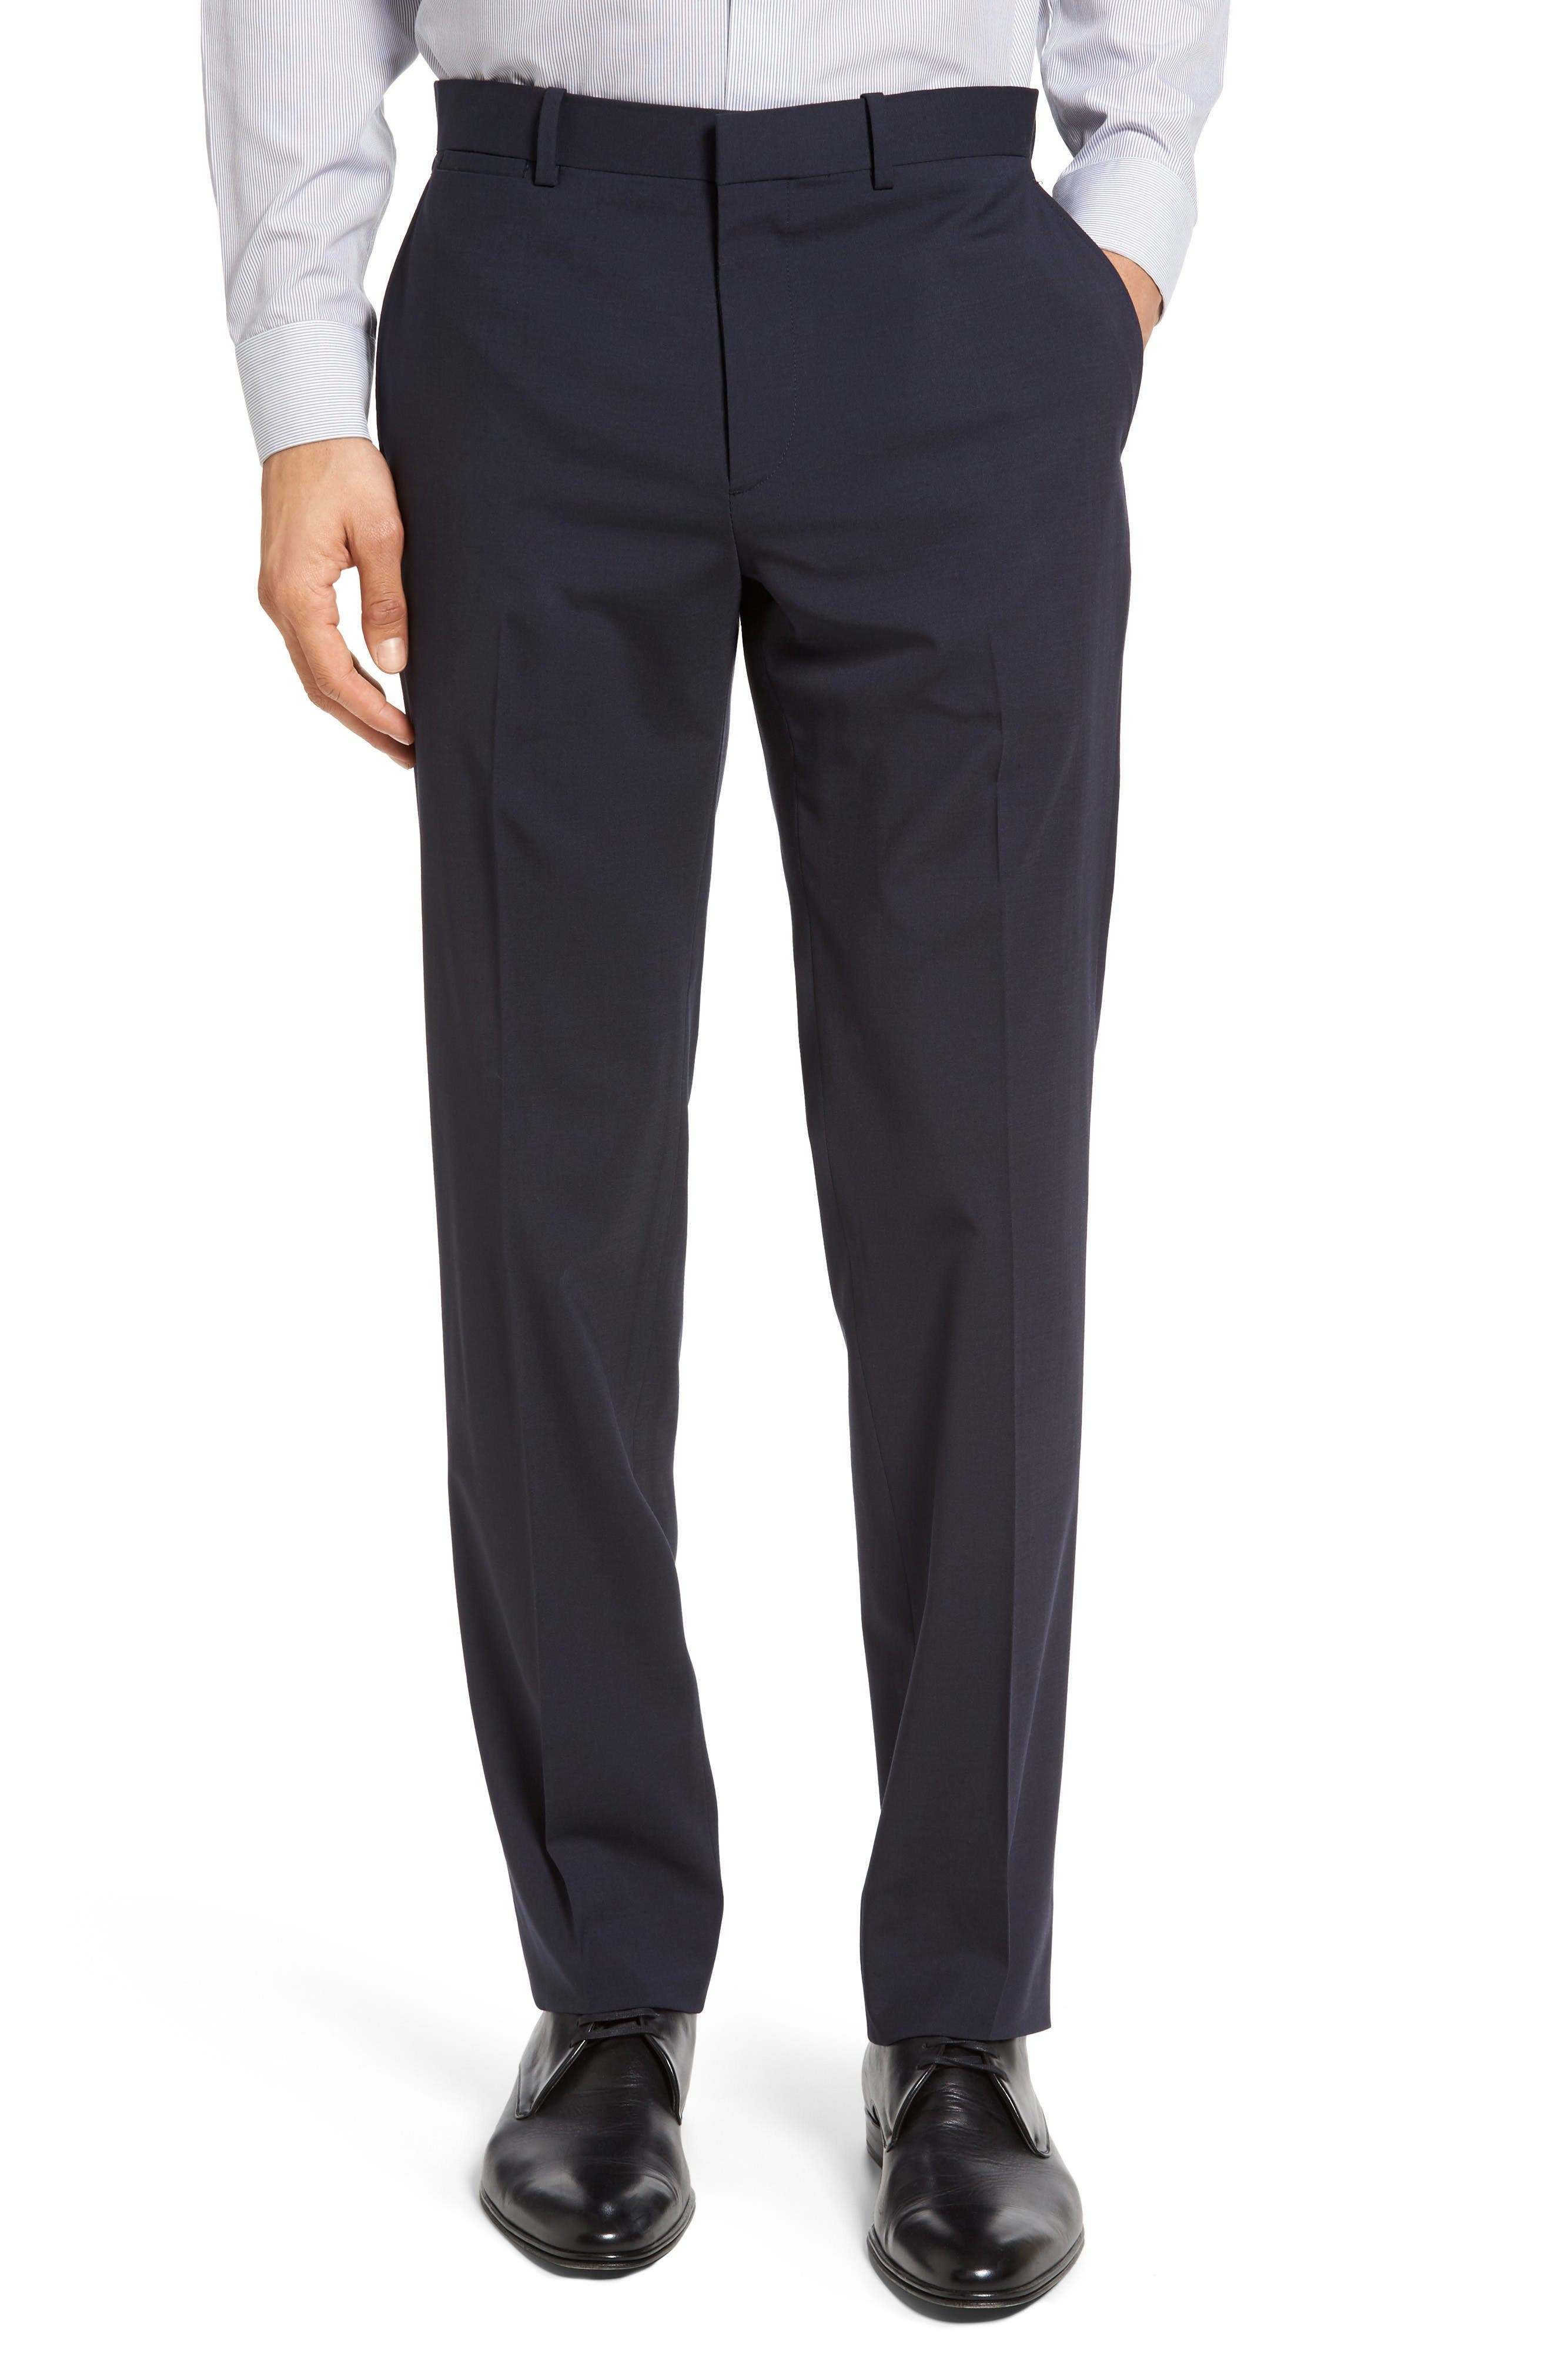 Alternate Image 1 Selected - Theory Marlo New Tailor 2 Flat Front Solid Stretch Wool Trousers